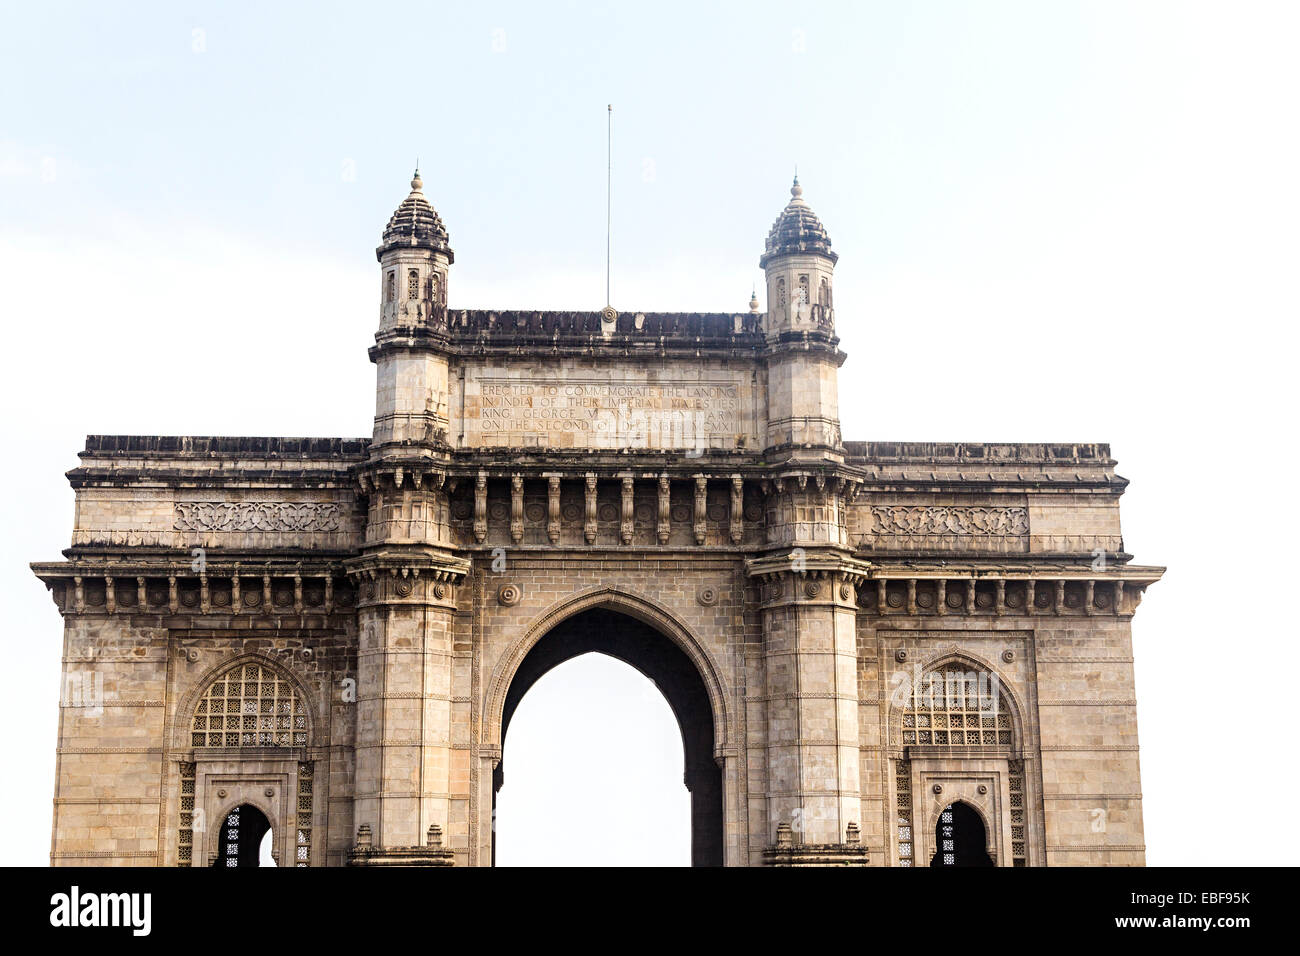 india Mumbai Gateway Of India - Stock Image